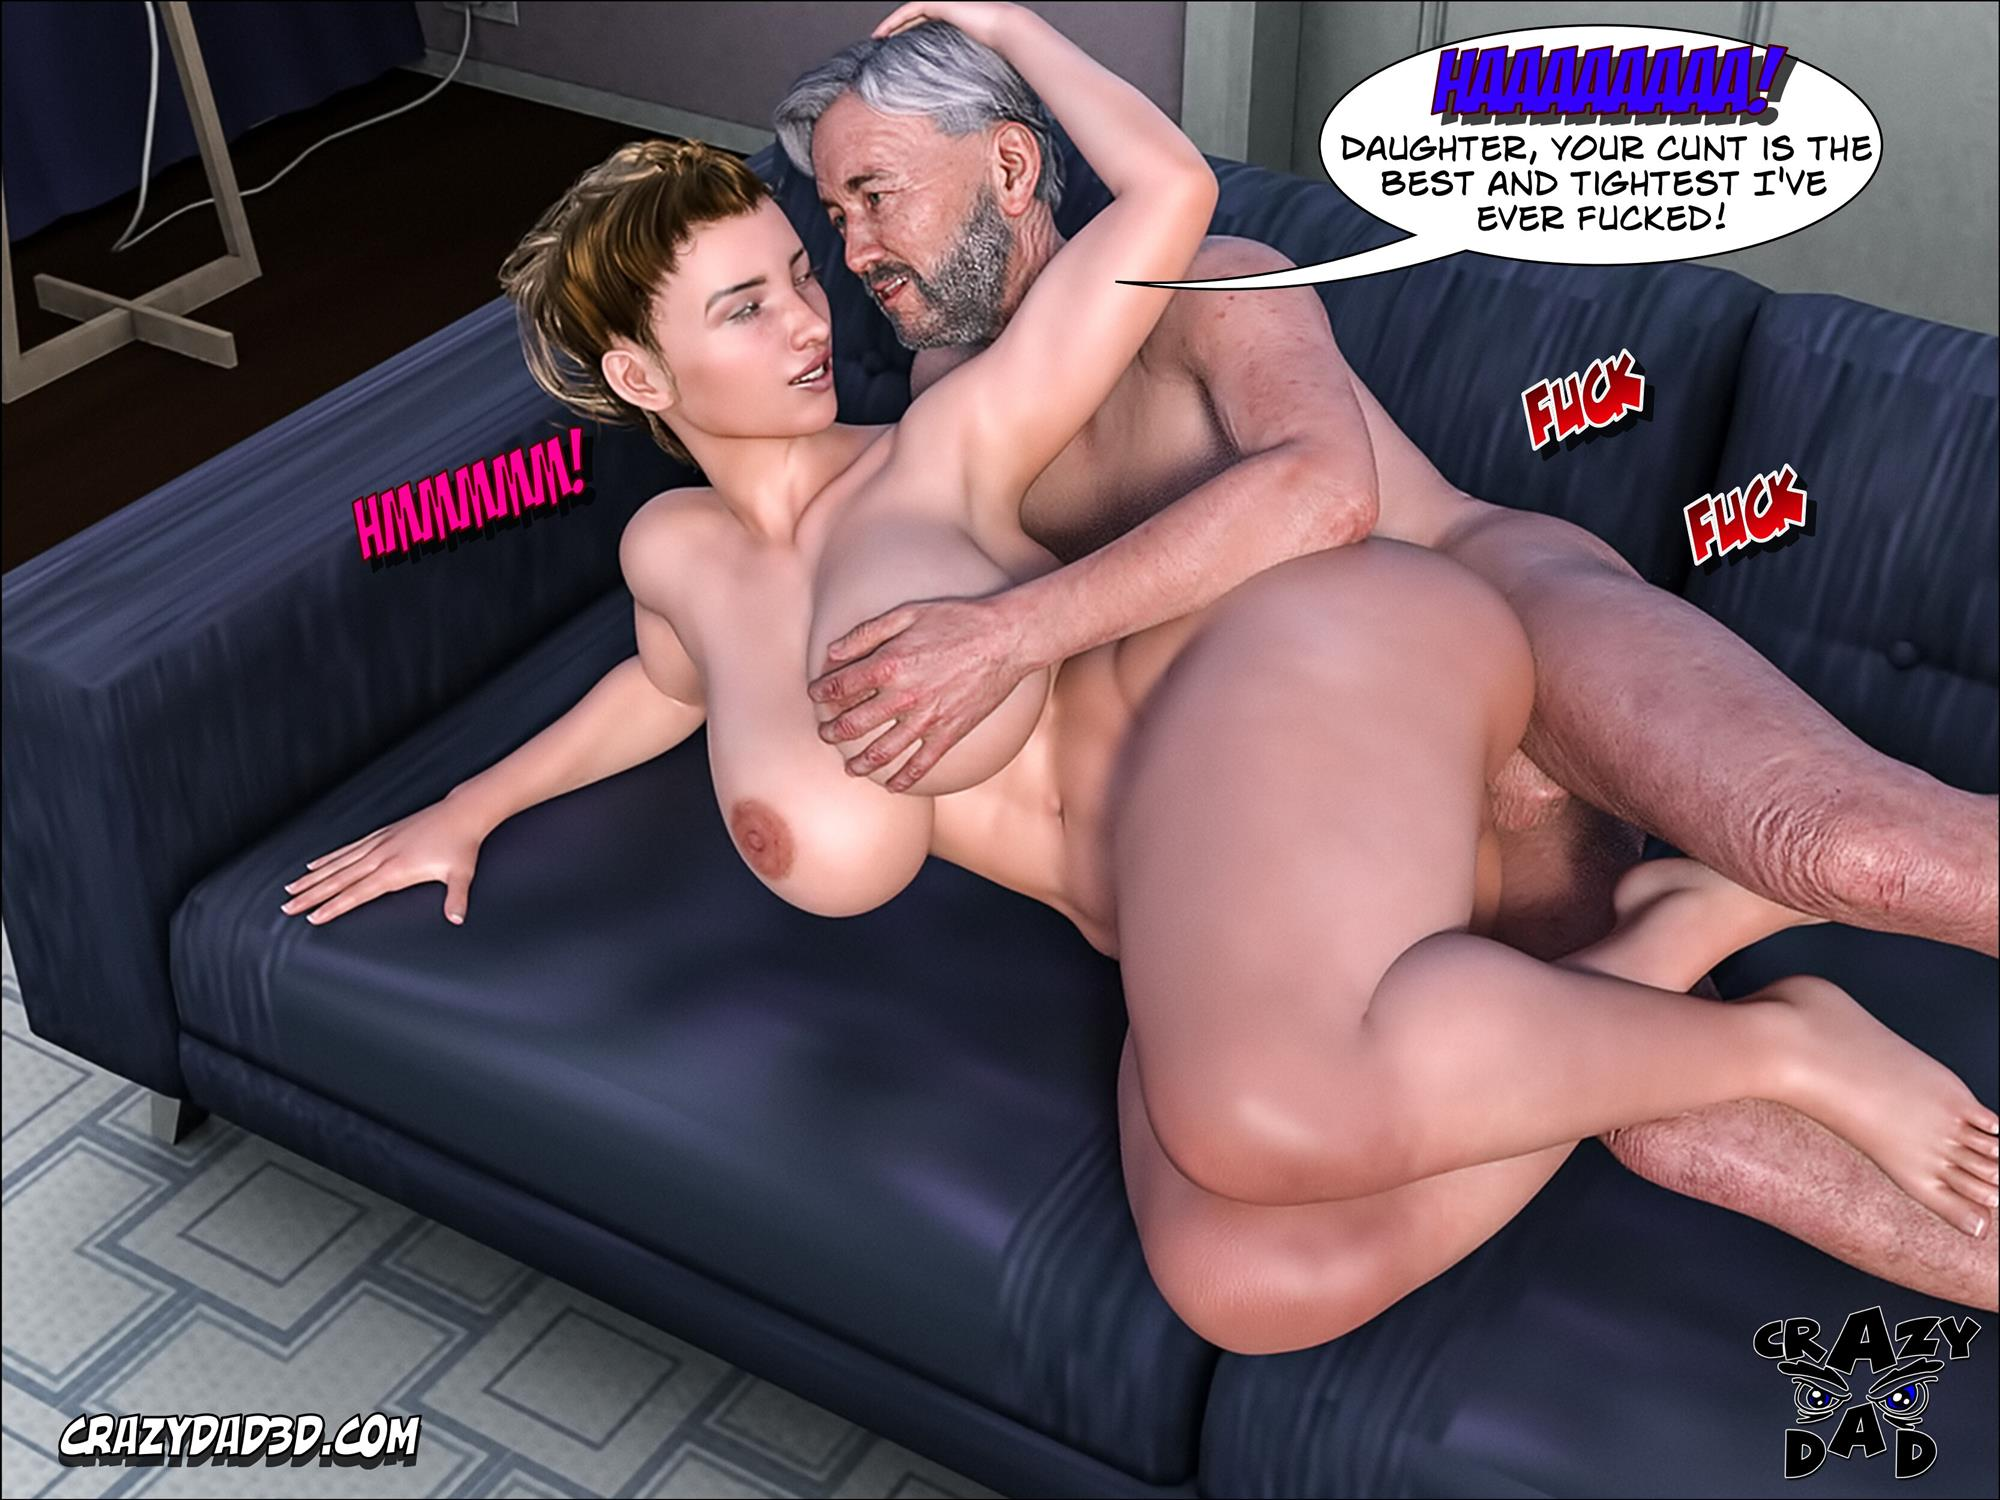 Father-in-Law at Home 10 [Crazy Dad 3D] - Foto 43